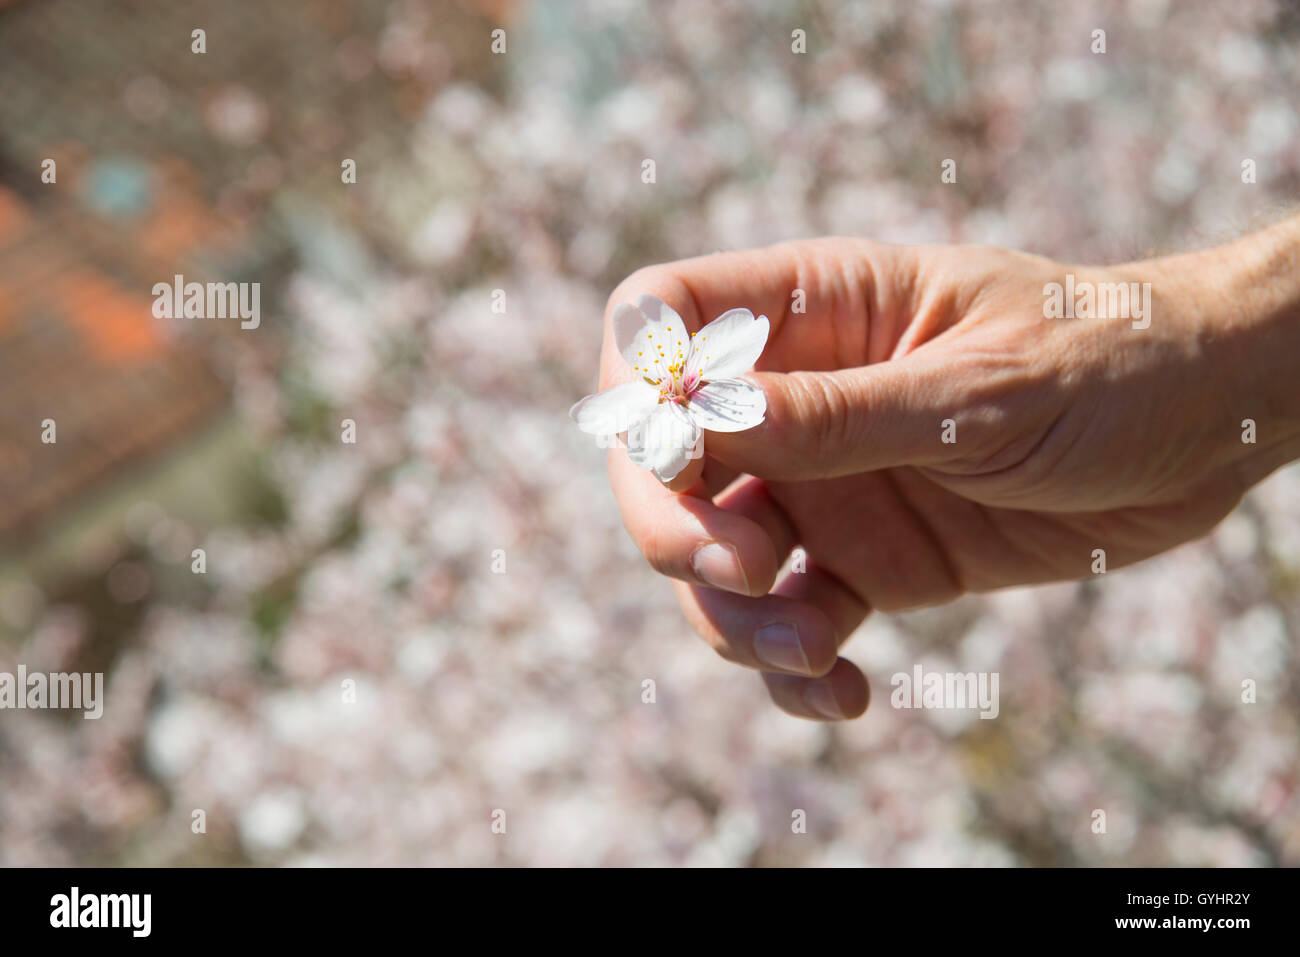 Man's hand holding a flower of almond tree. - Stock Image